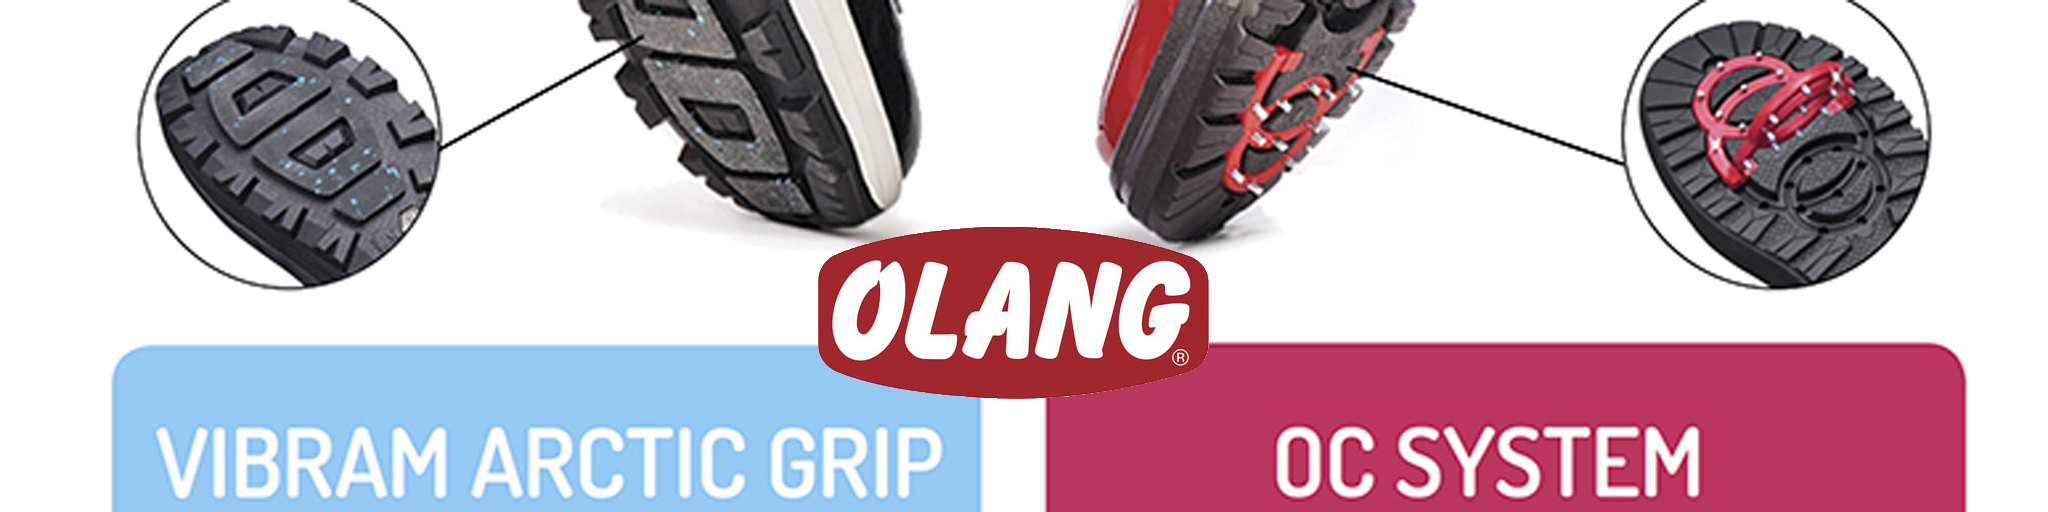 Olang Collection Banner